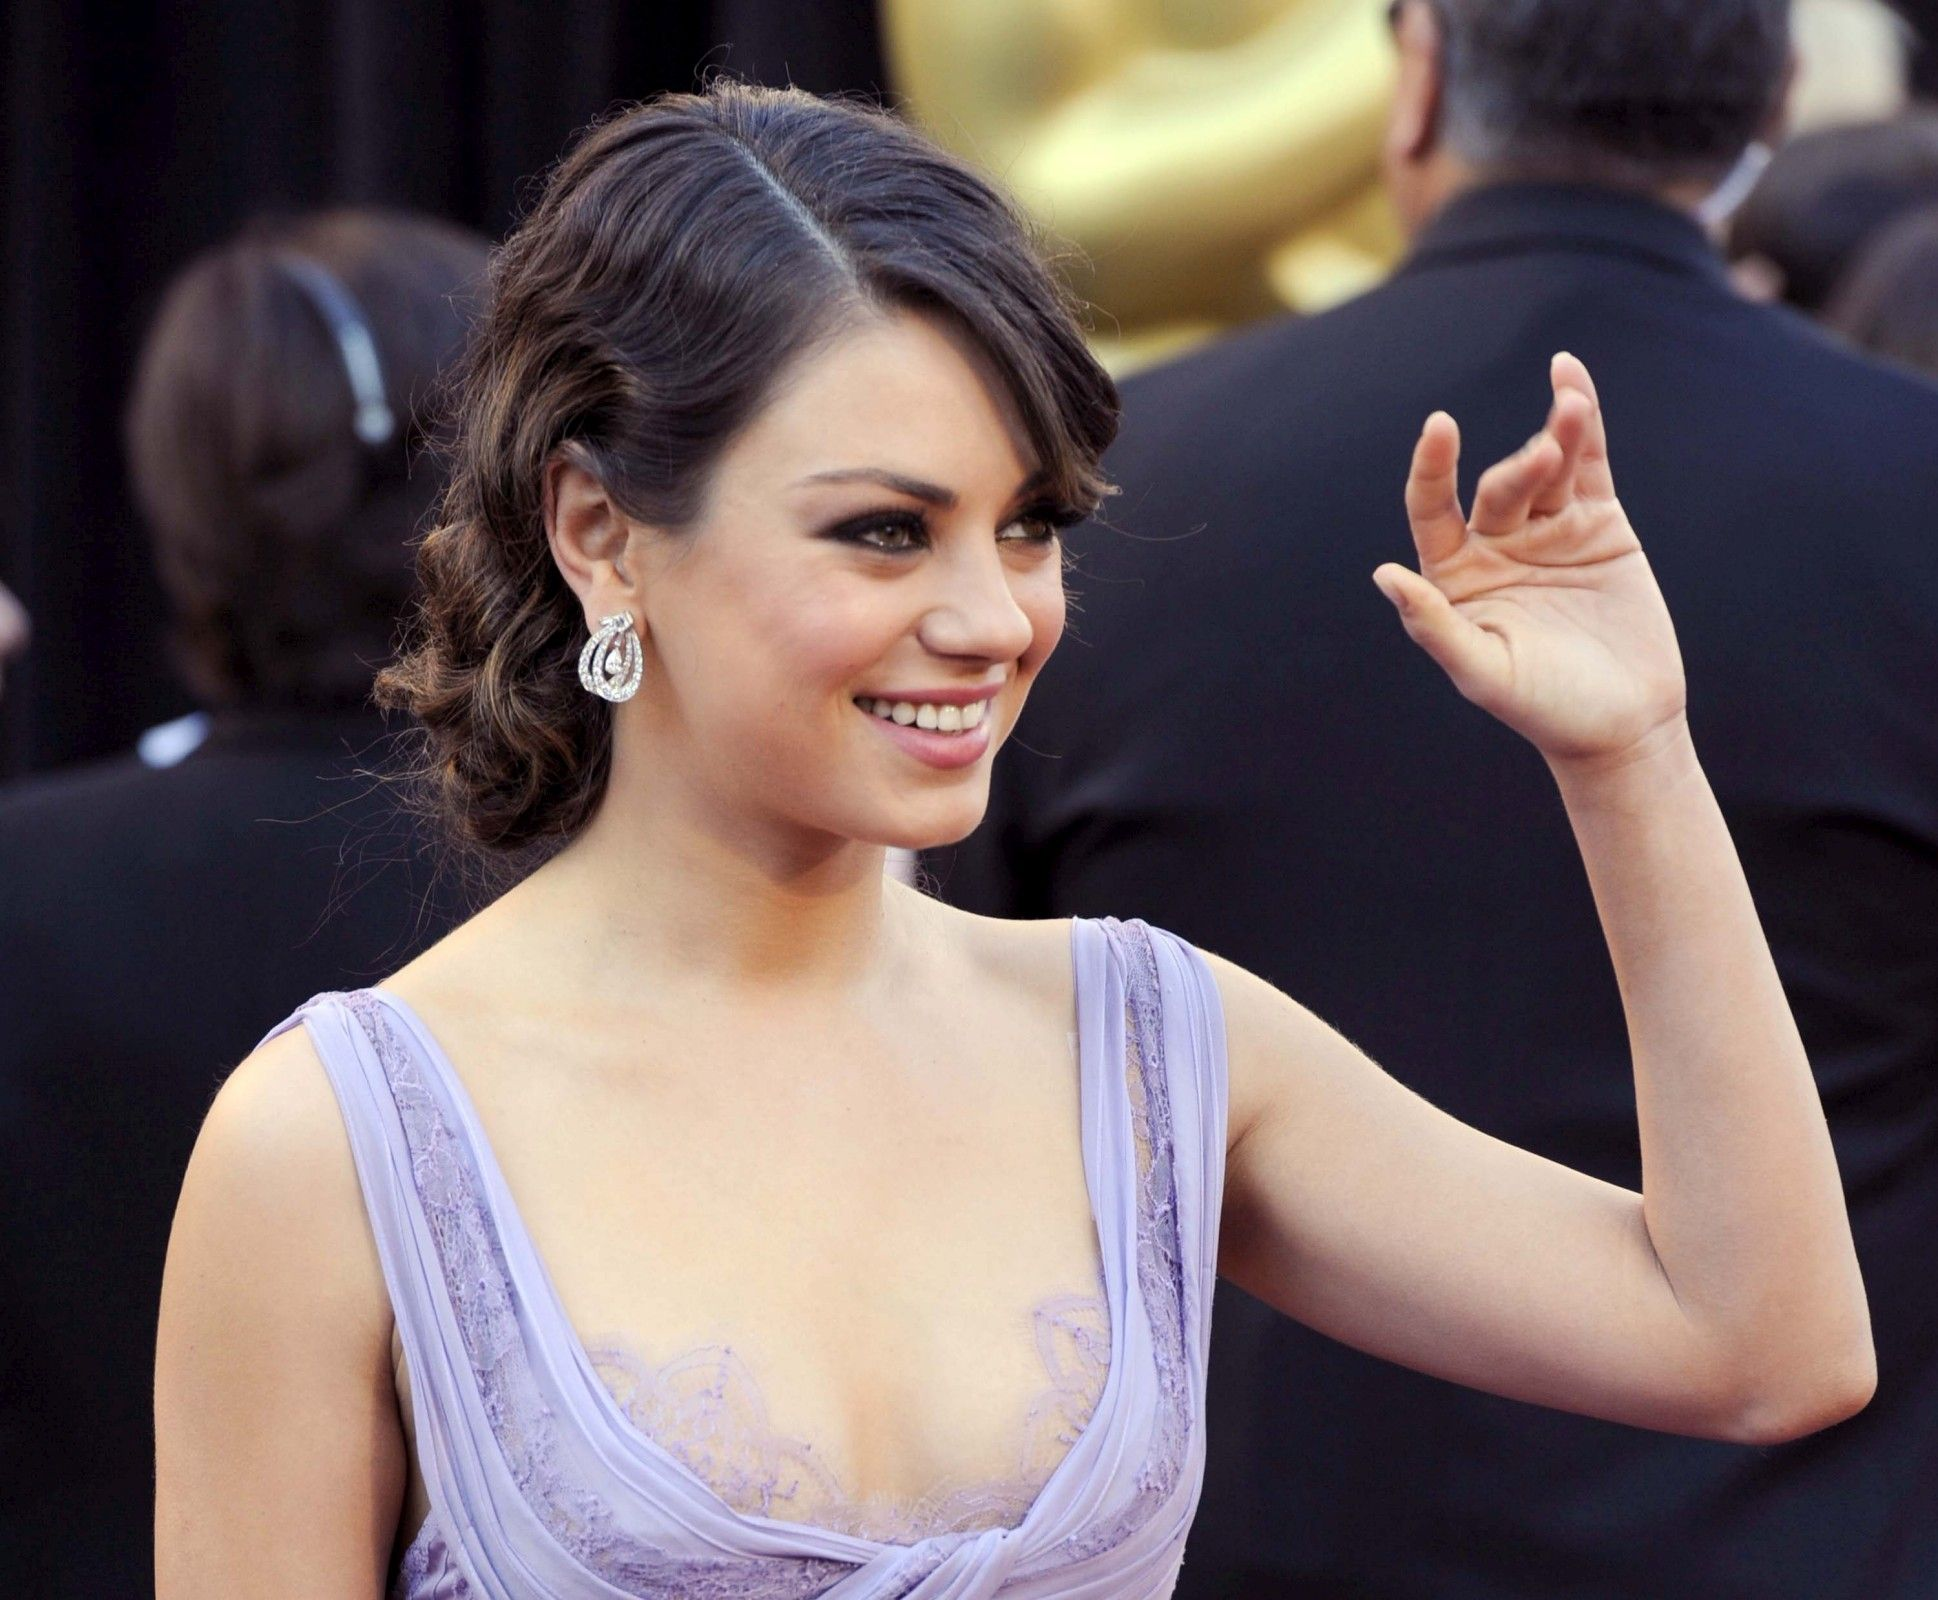 Pictures leaked mila kunis